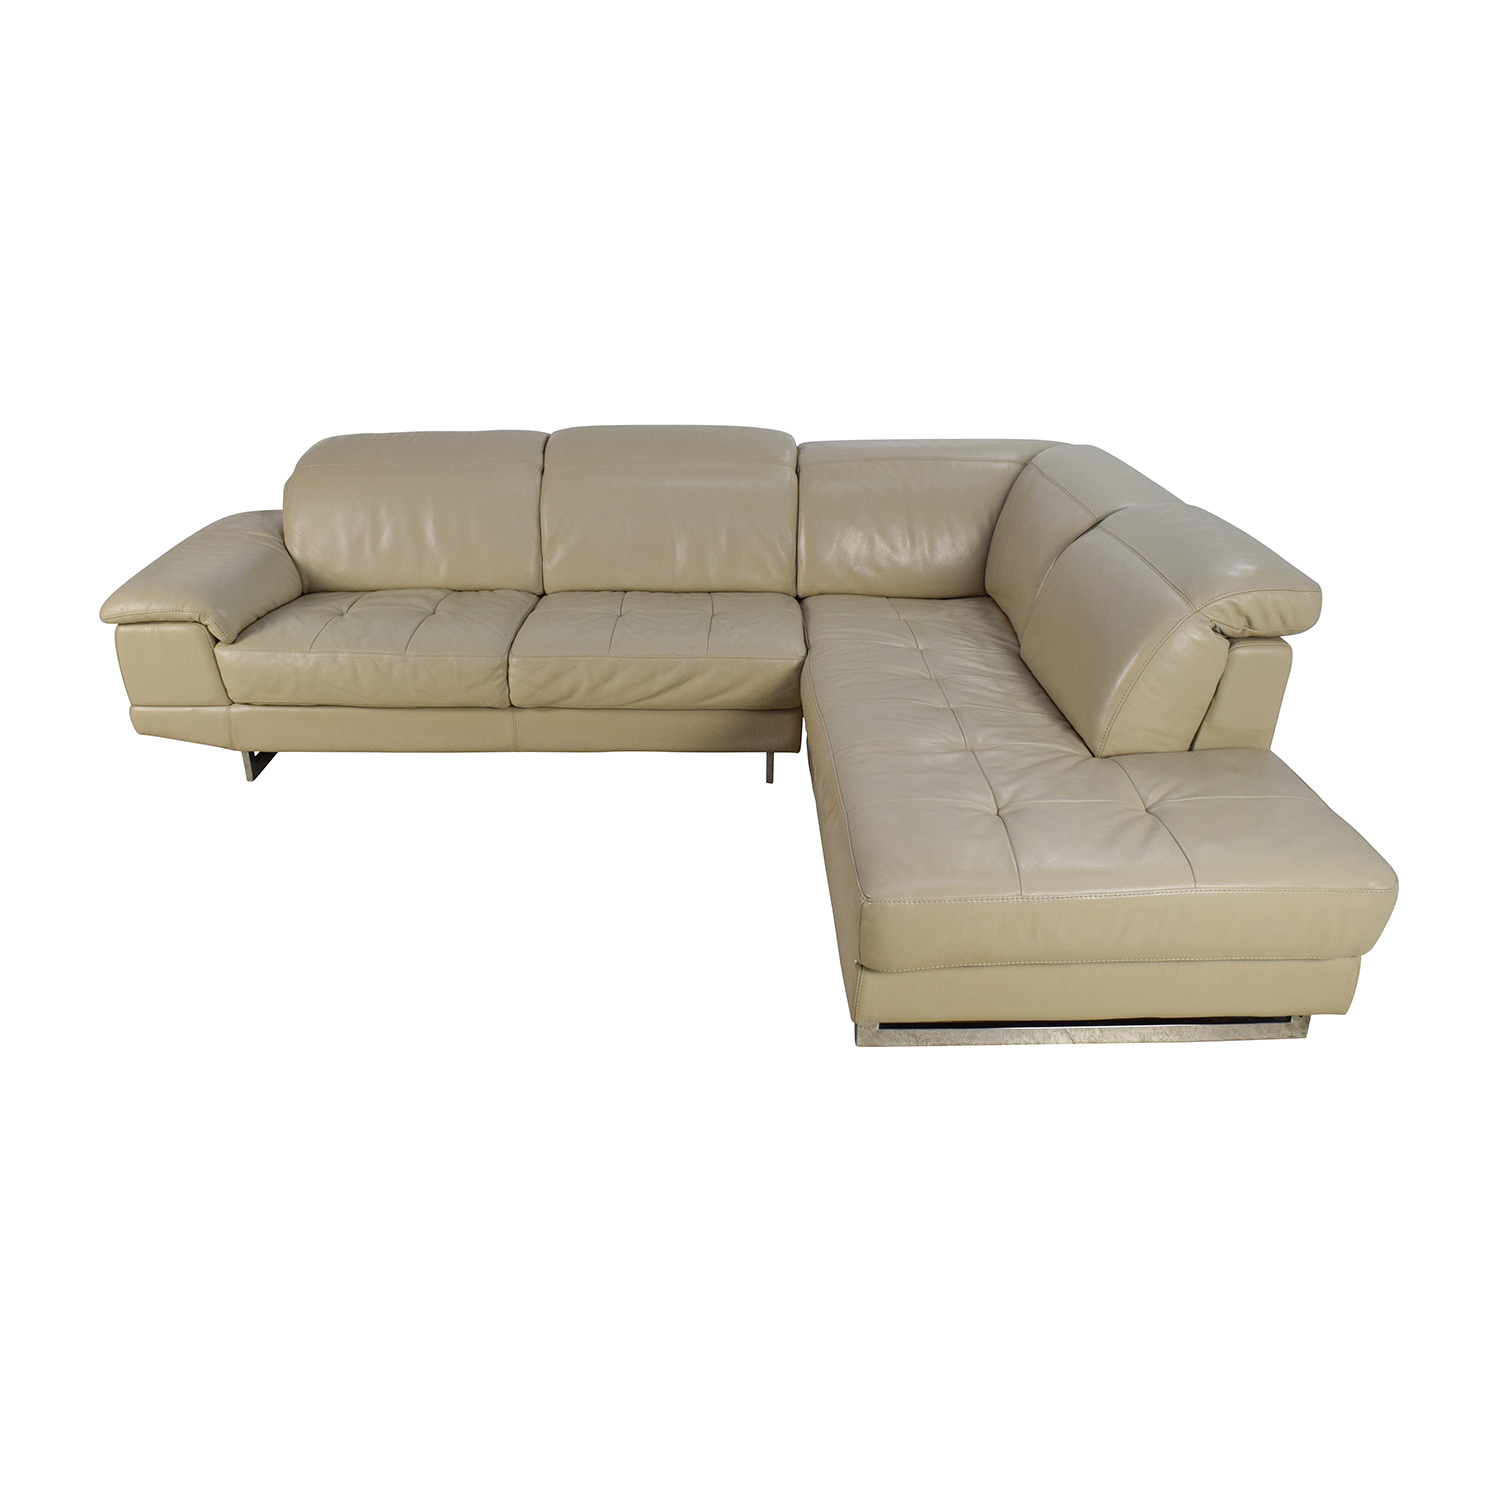 Beige Italian Leather Couch with Adjustable Headrests nj